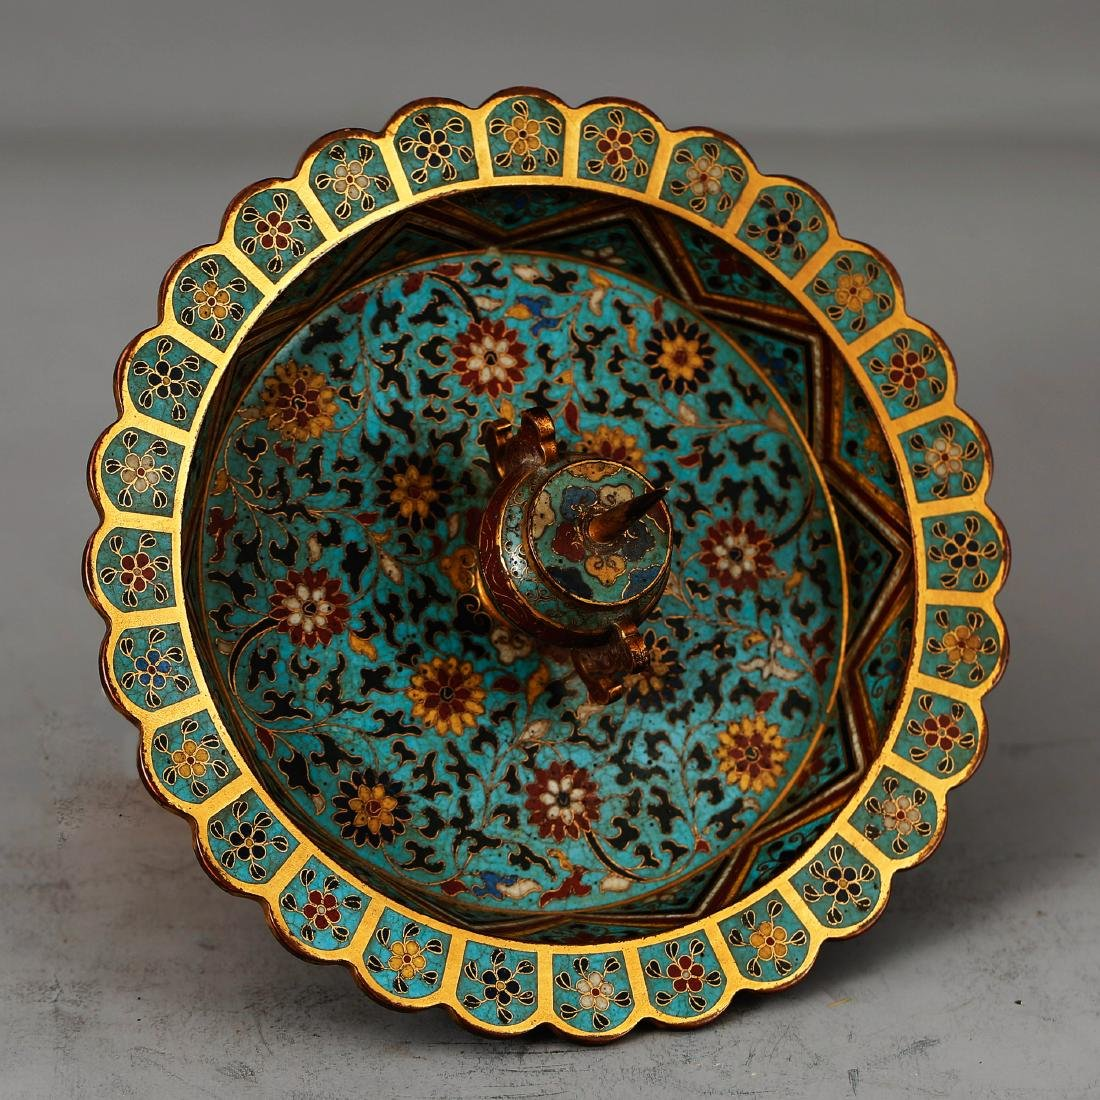 CHINESE CLOISONNE ENAMEL CANDLE STAND - 4